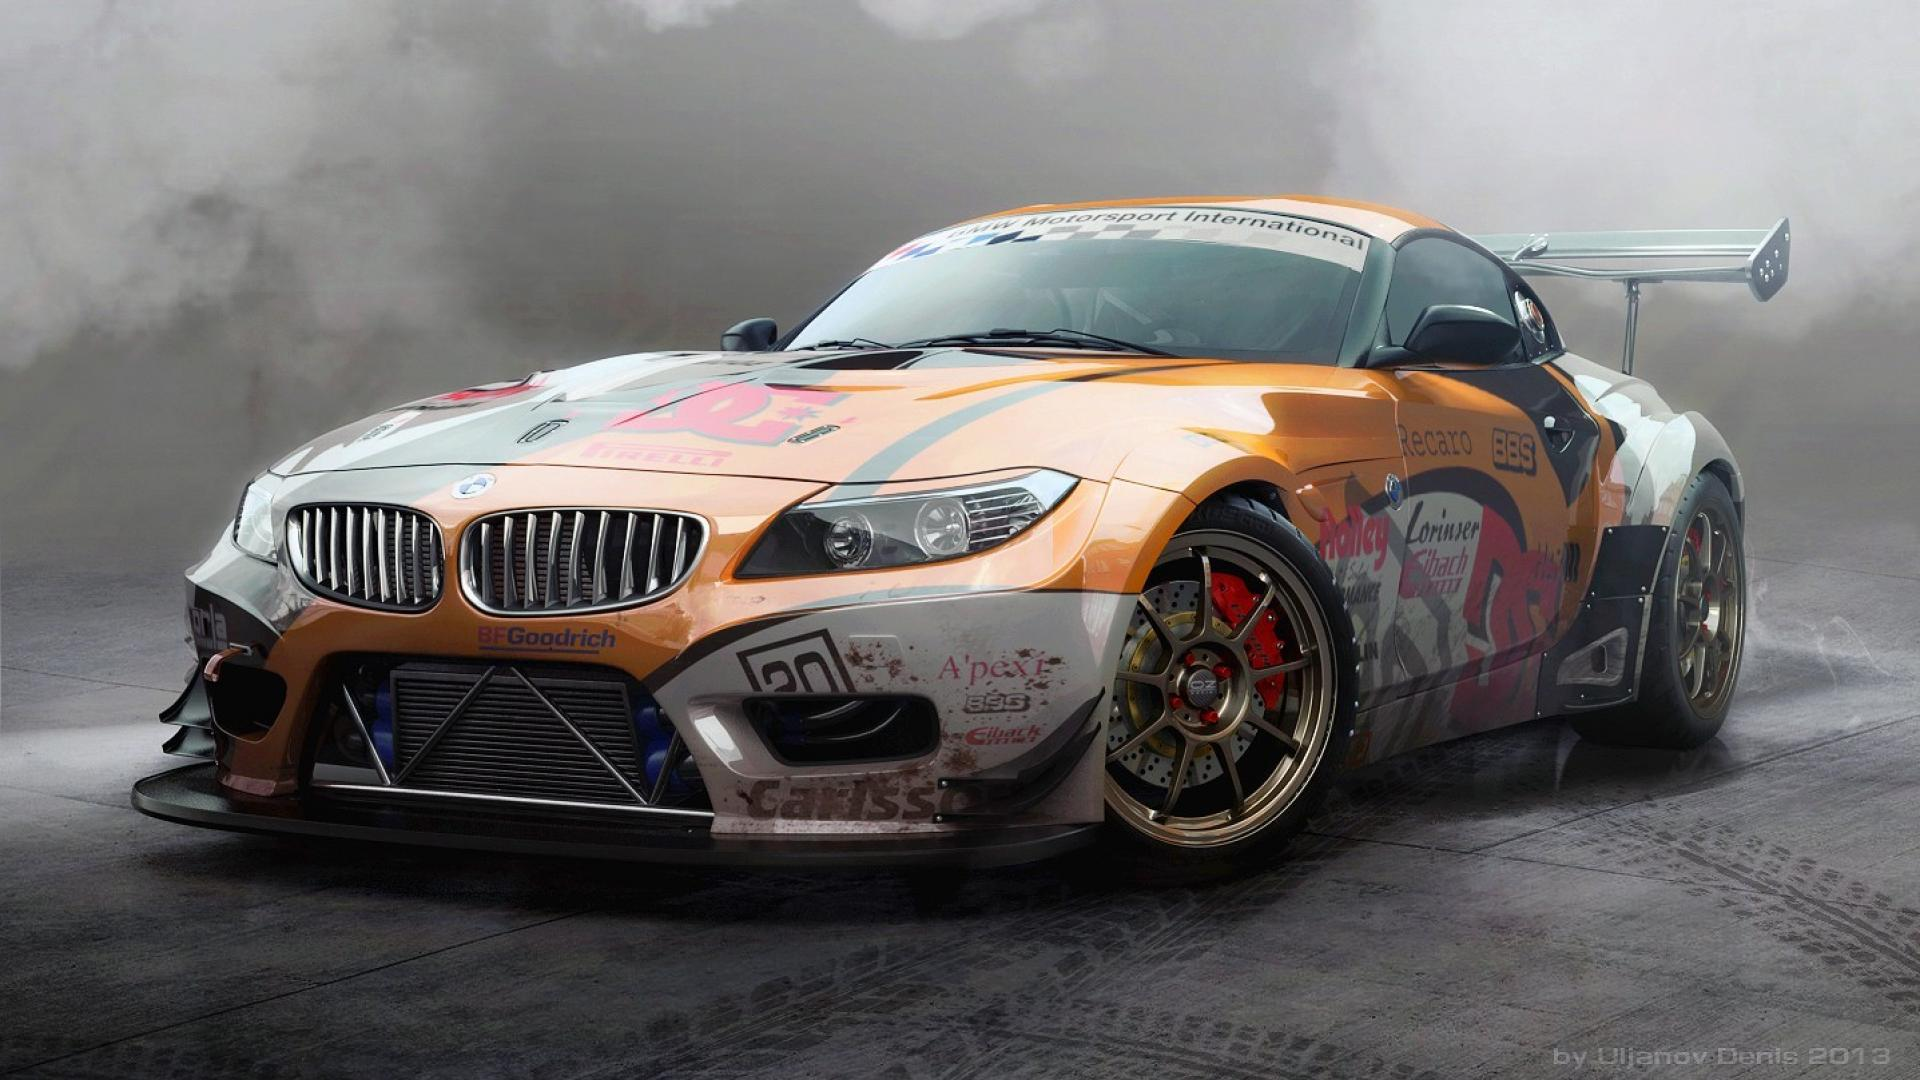 BMW Z4 GT3 Wallpaper - WallpaperSafari